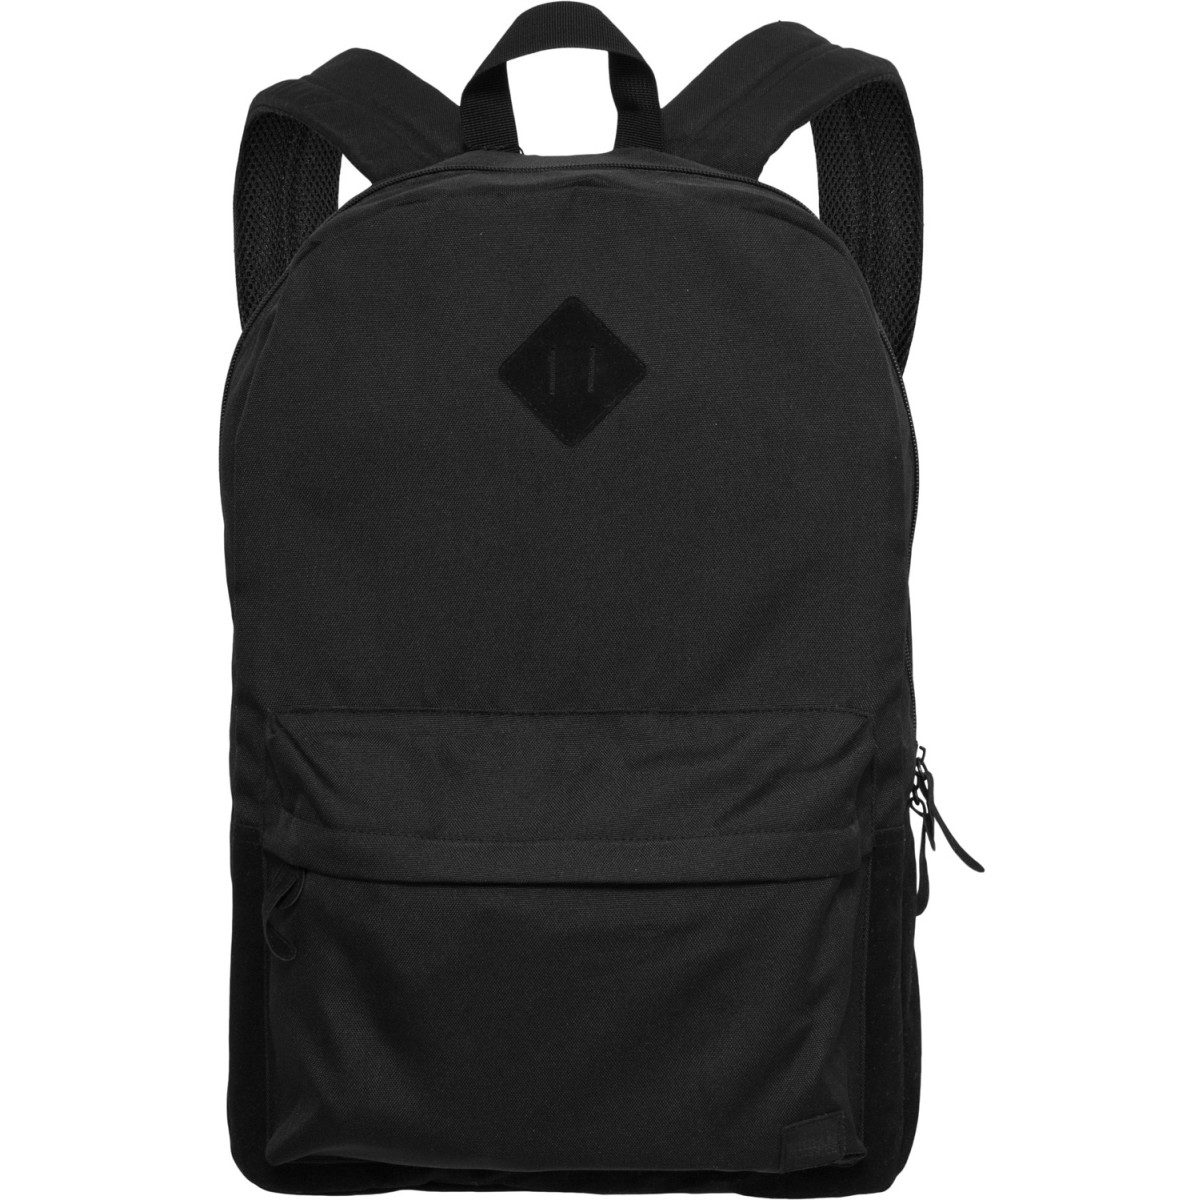 Fake Cheap Online Lowest Price Urban classics Casual Daypack - TB817 Cheap Price Low Shipping Fee Keoh9Vavl